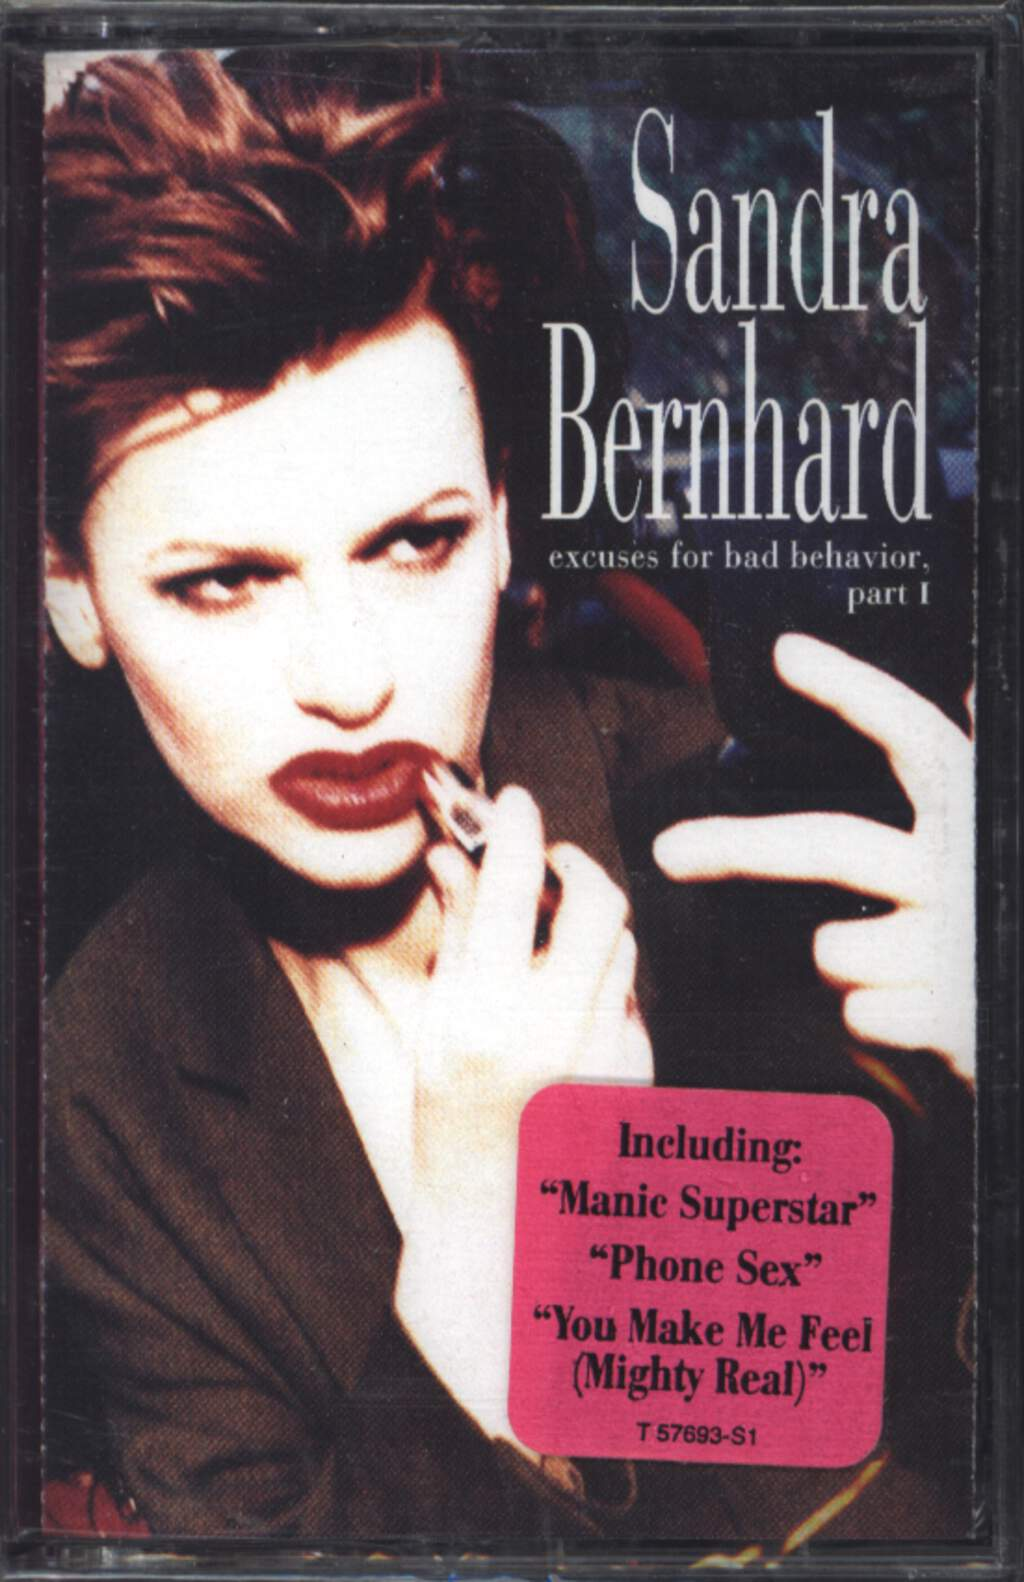 Sandra Bernhard: Excuses For Bad Behavior, Part 1, Compact Cassette